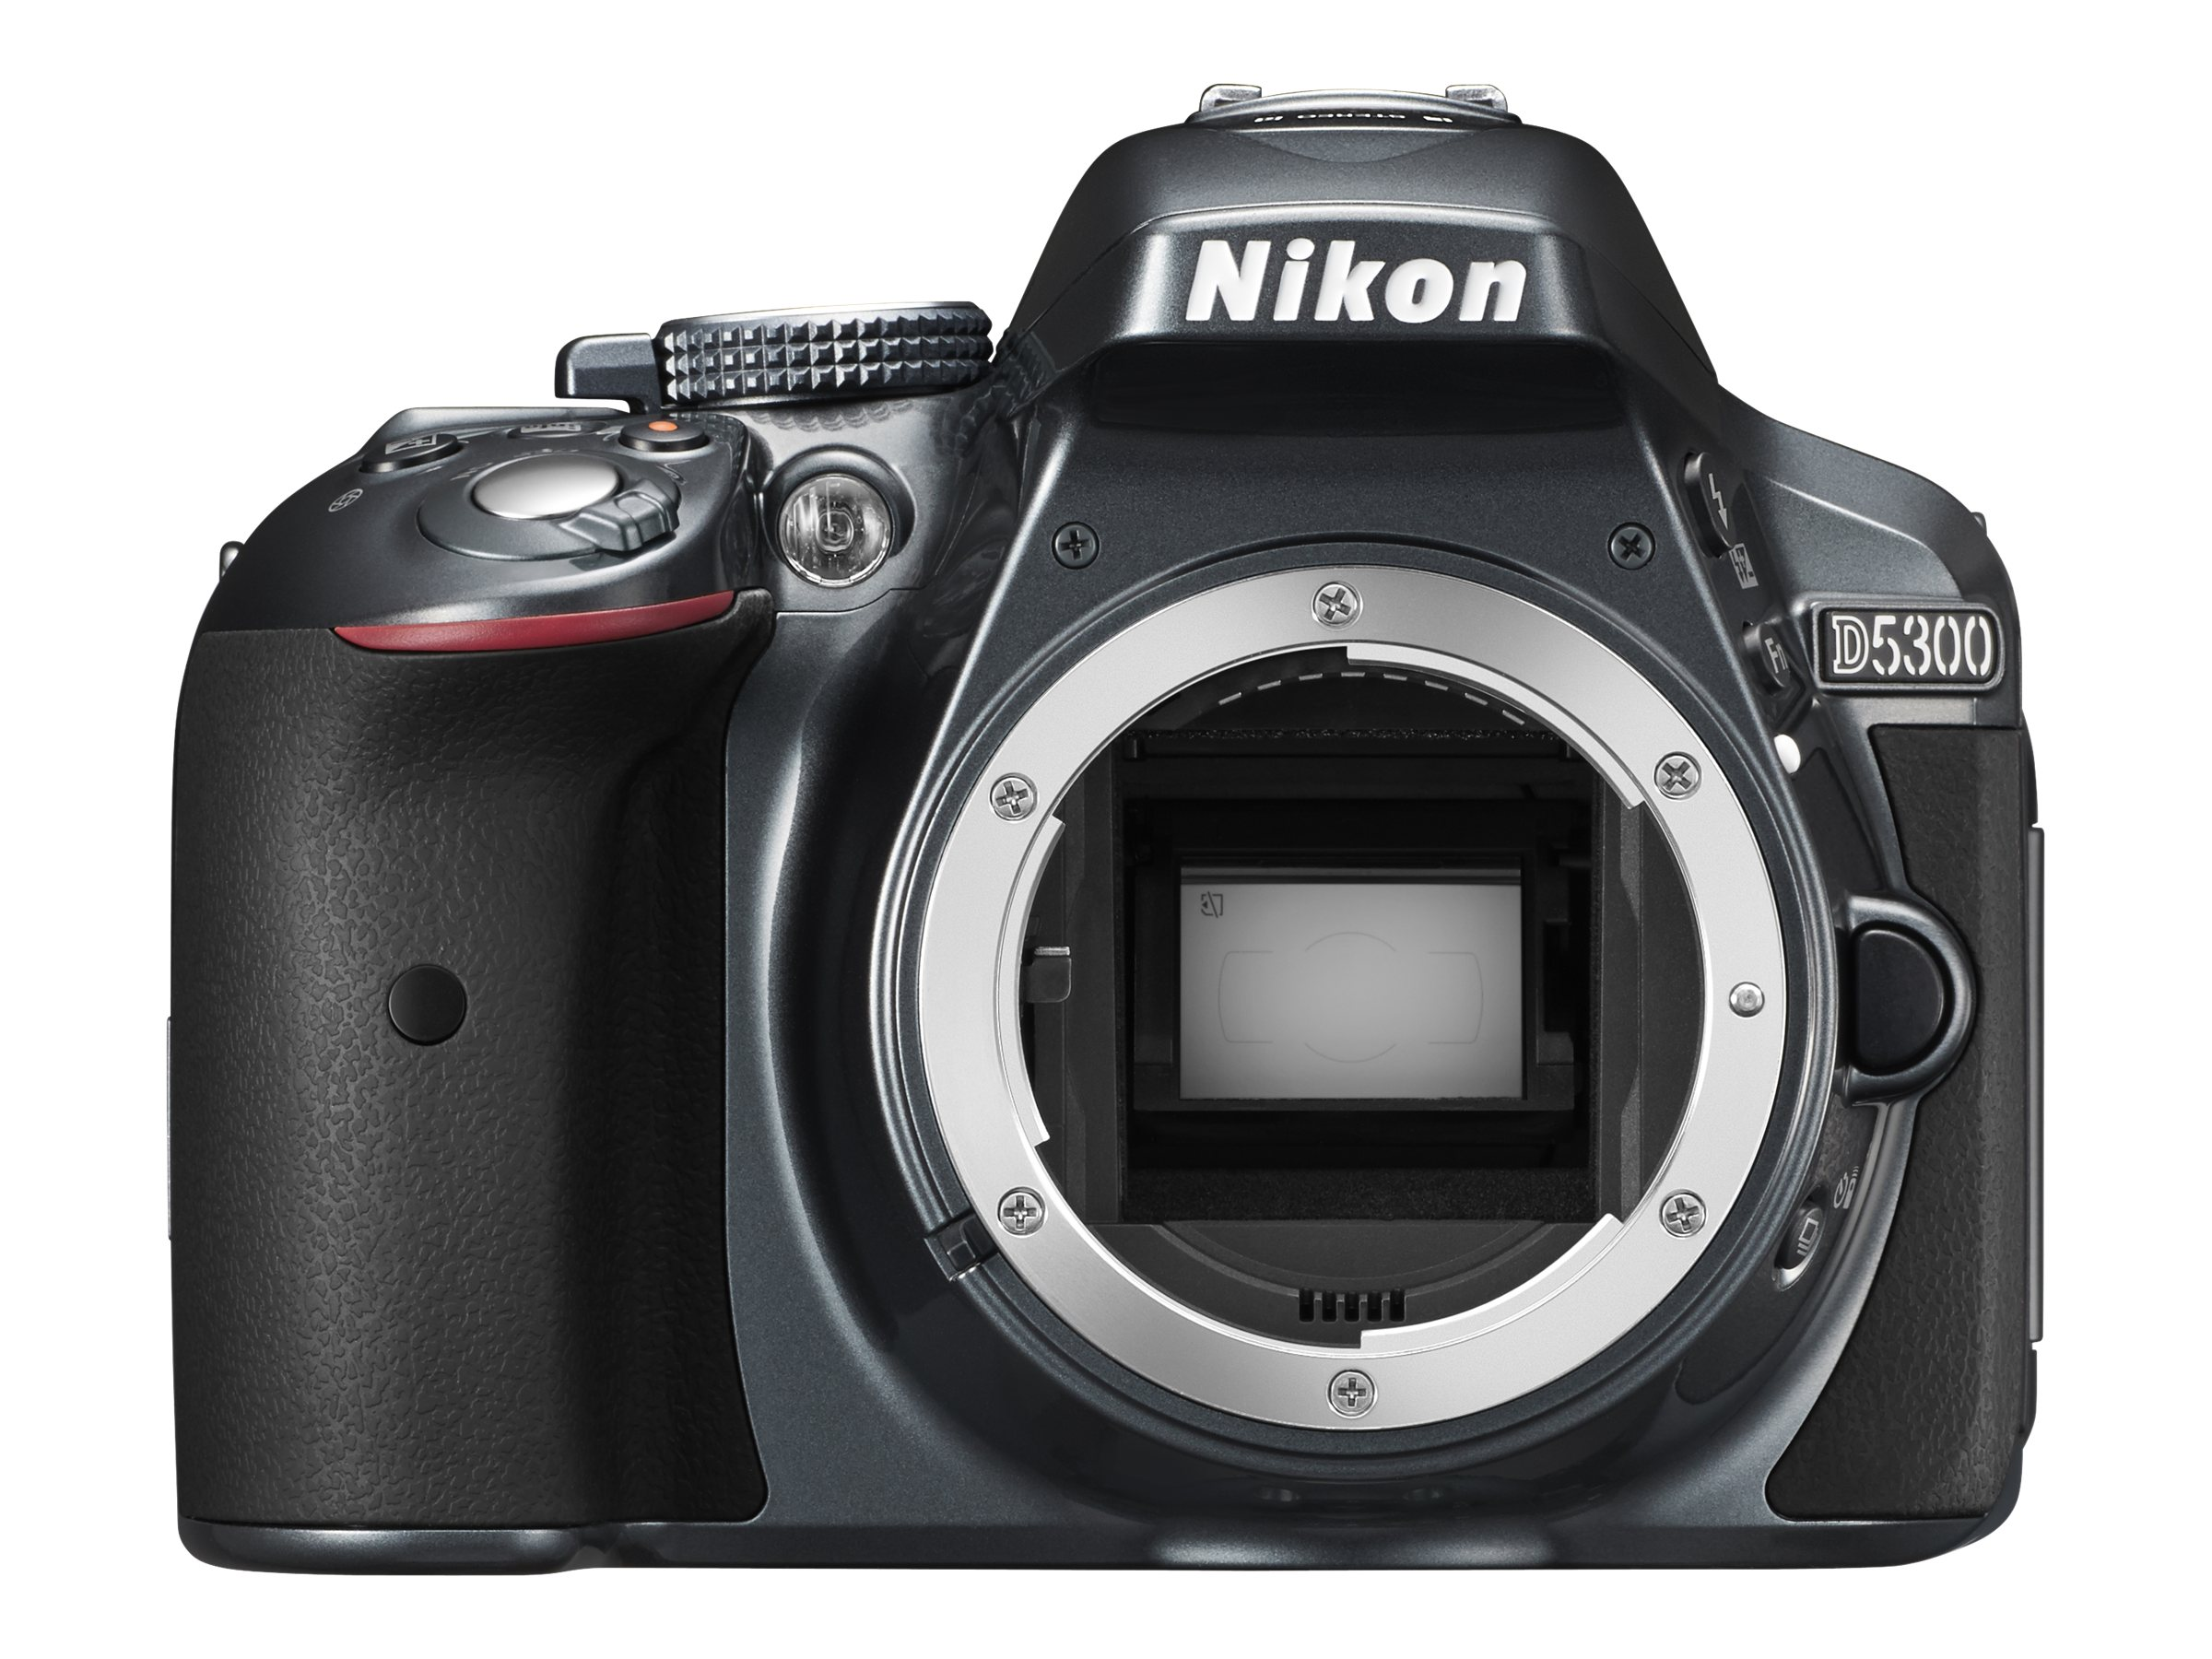 Nikon D5300 DX-Format Digital SLR Body - Grey, 1521, 16466956, Cameras - Digital - SLR